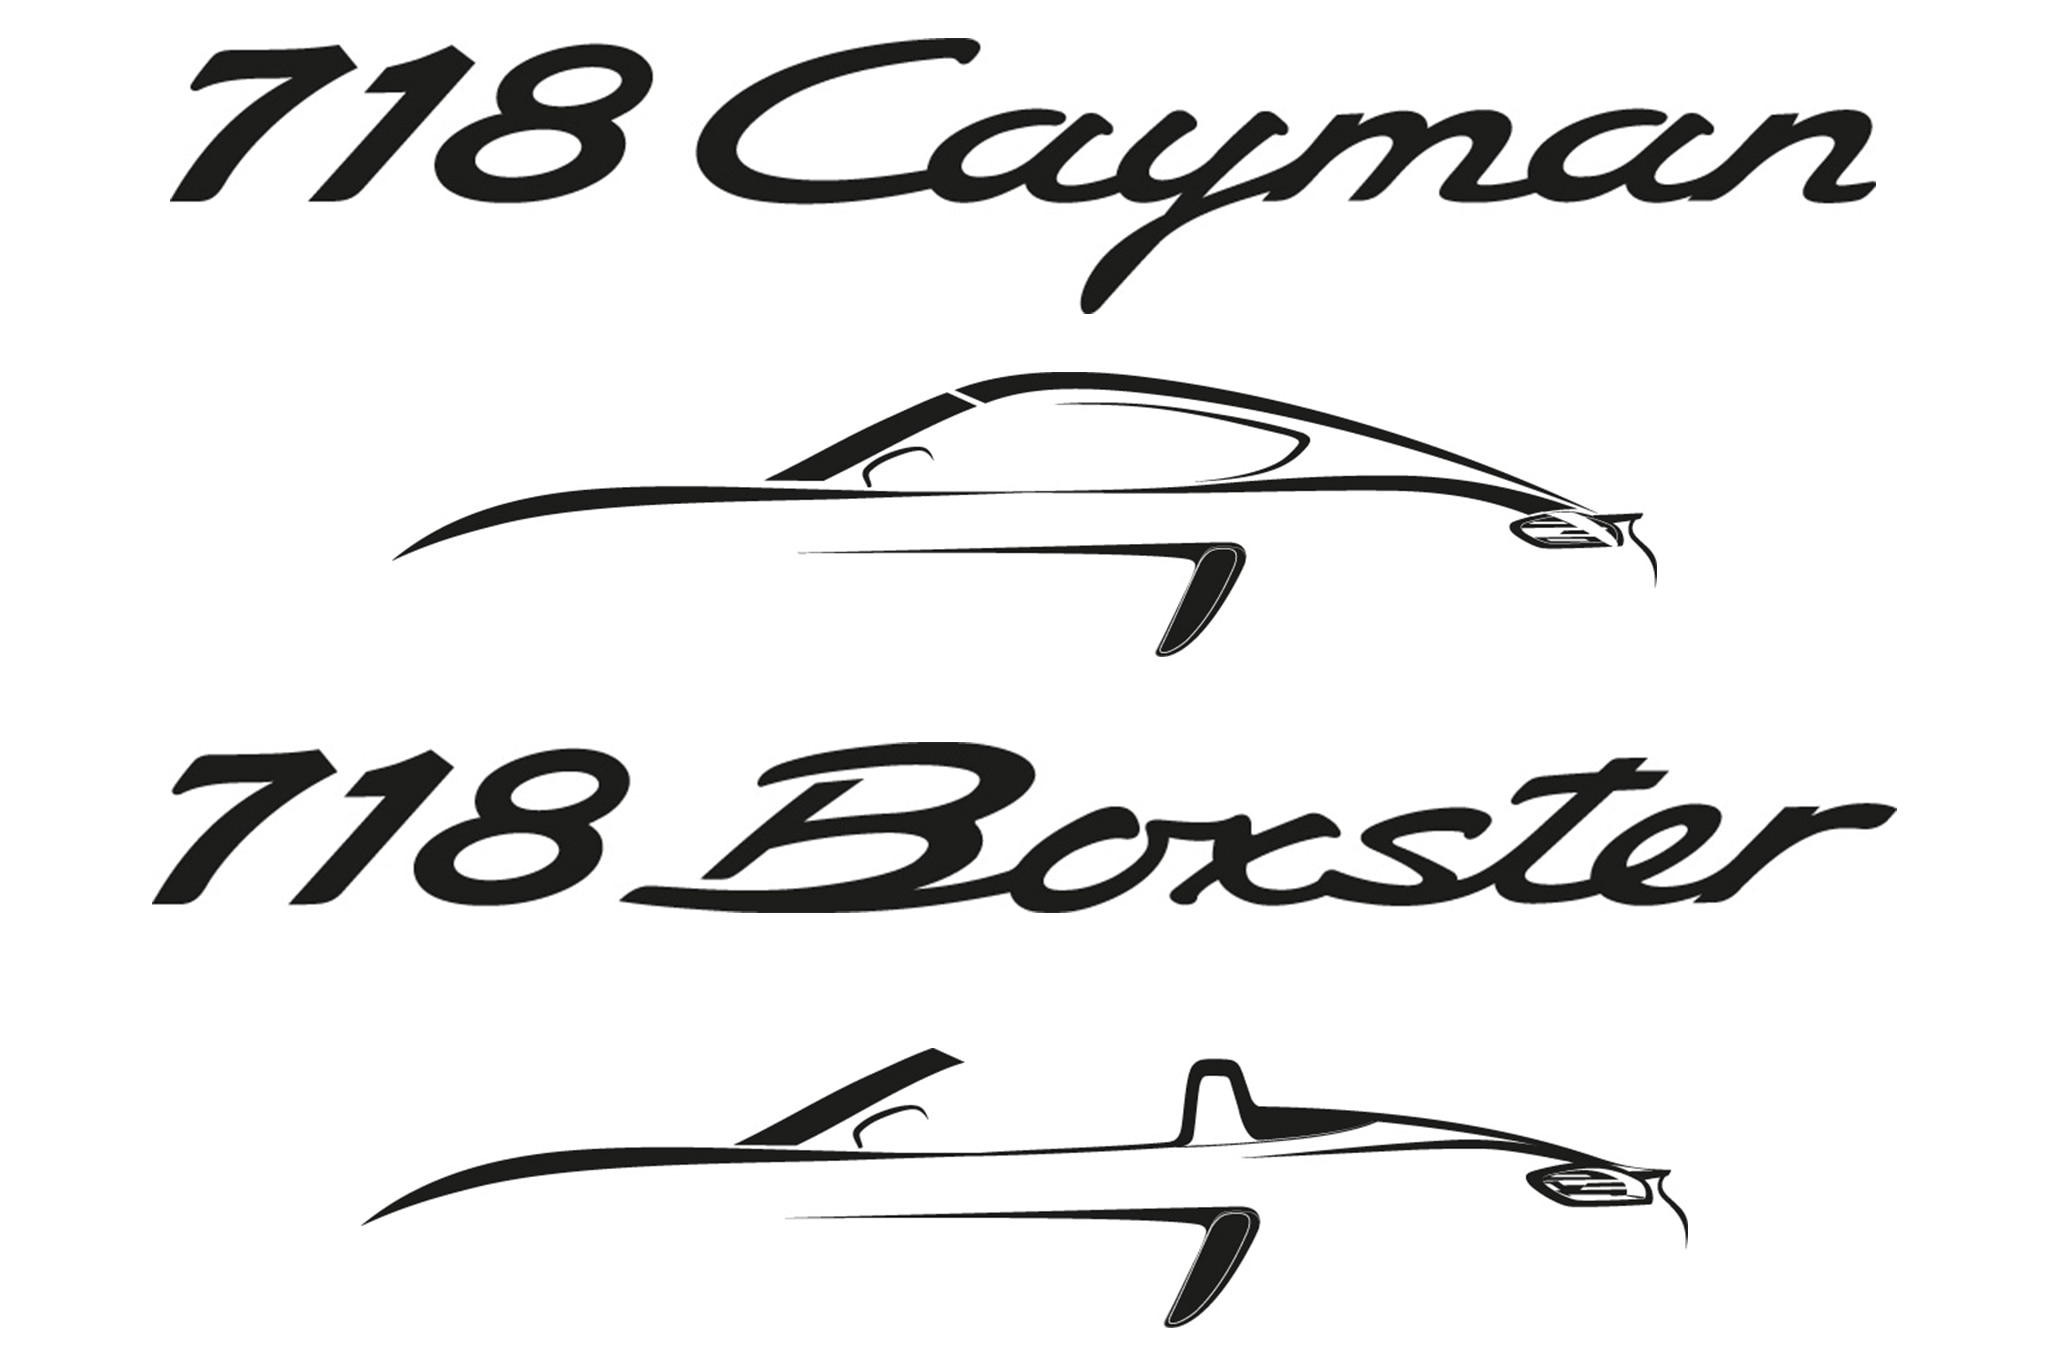 Porsche Boxster Cayman To Be Renamed 718 Go Four